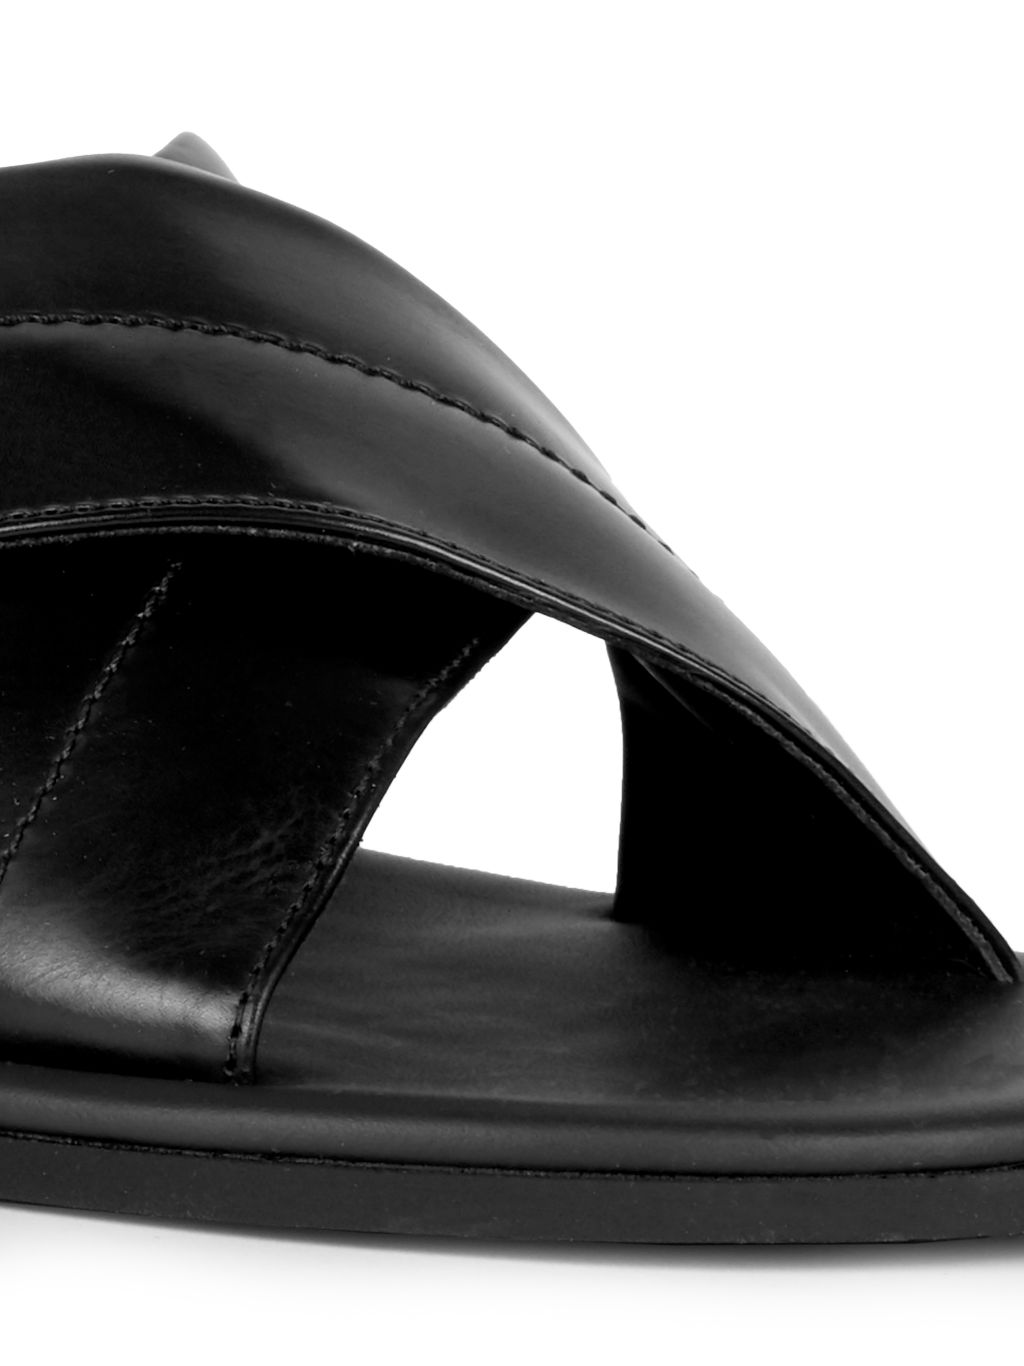 To Boot New York Costa Rica Leather Flat Sandals